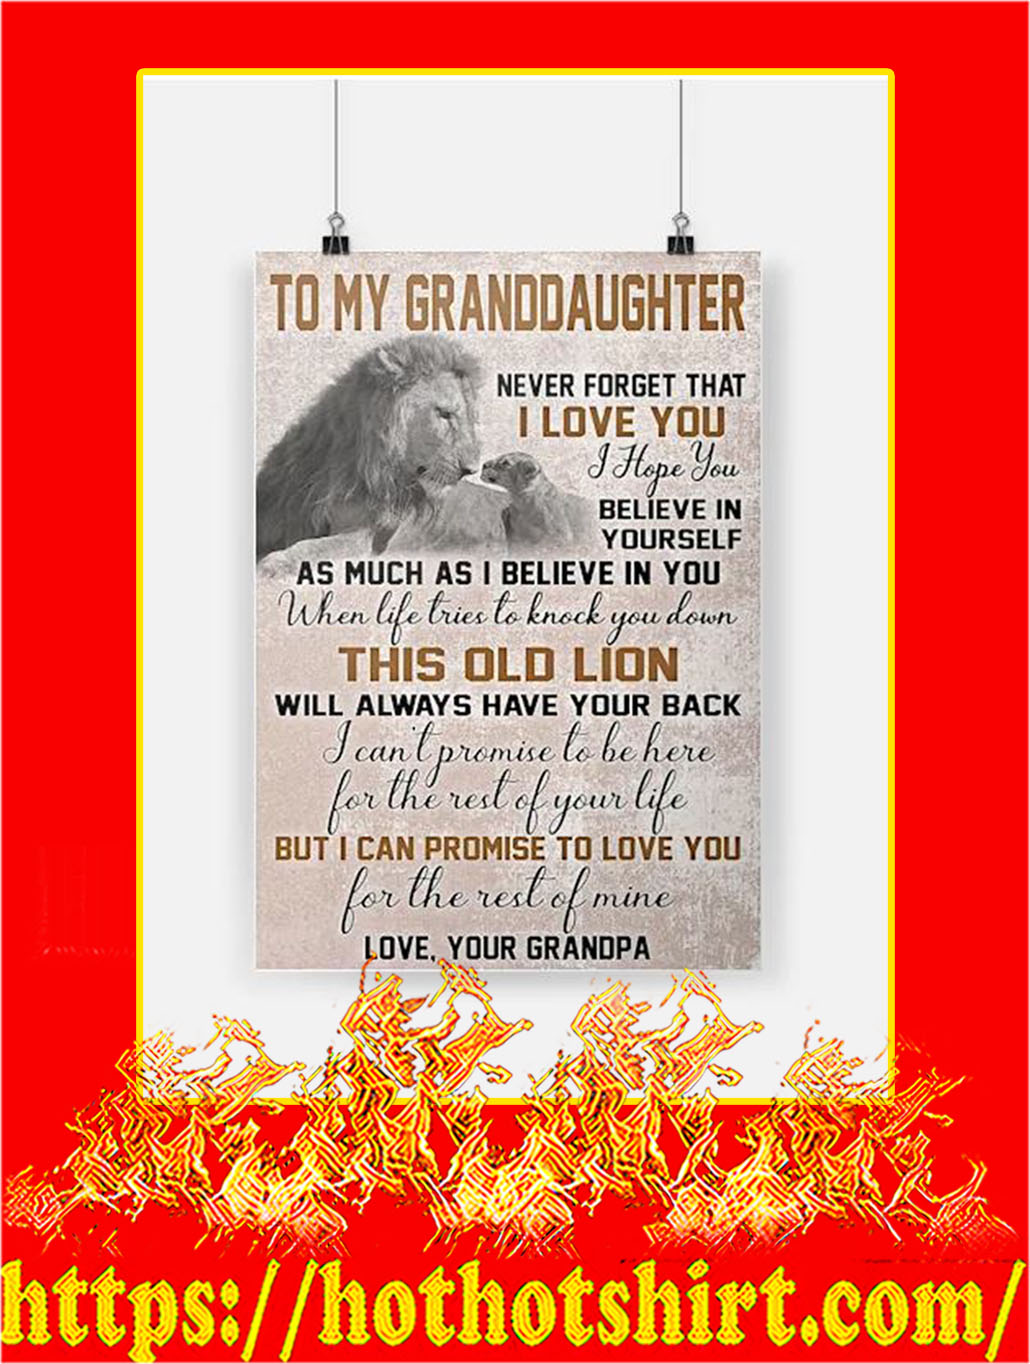 Lion To My Granddaughter Grandpa Poster - A3